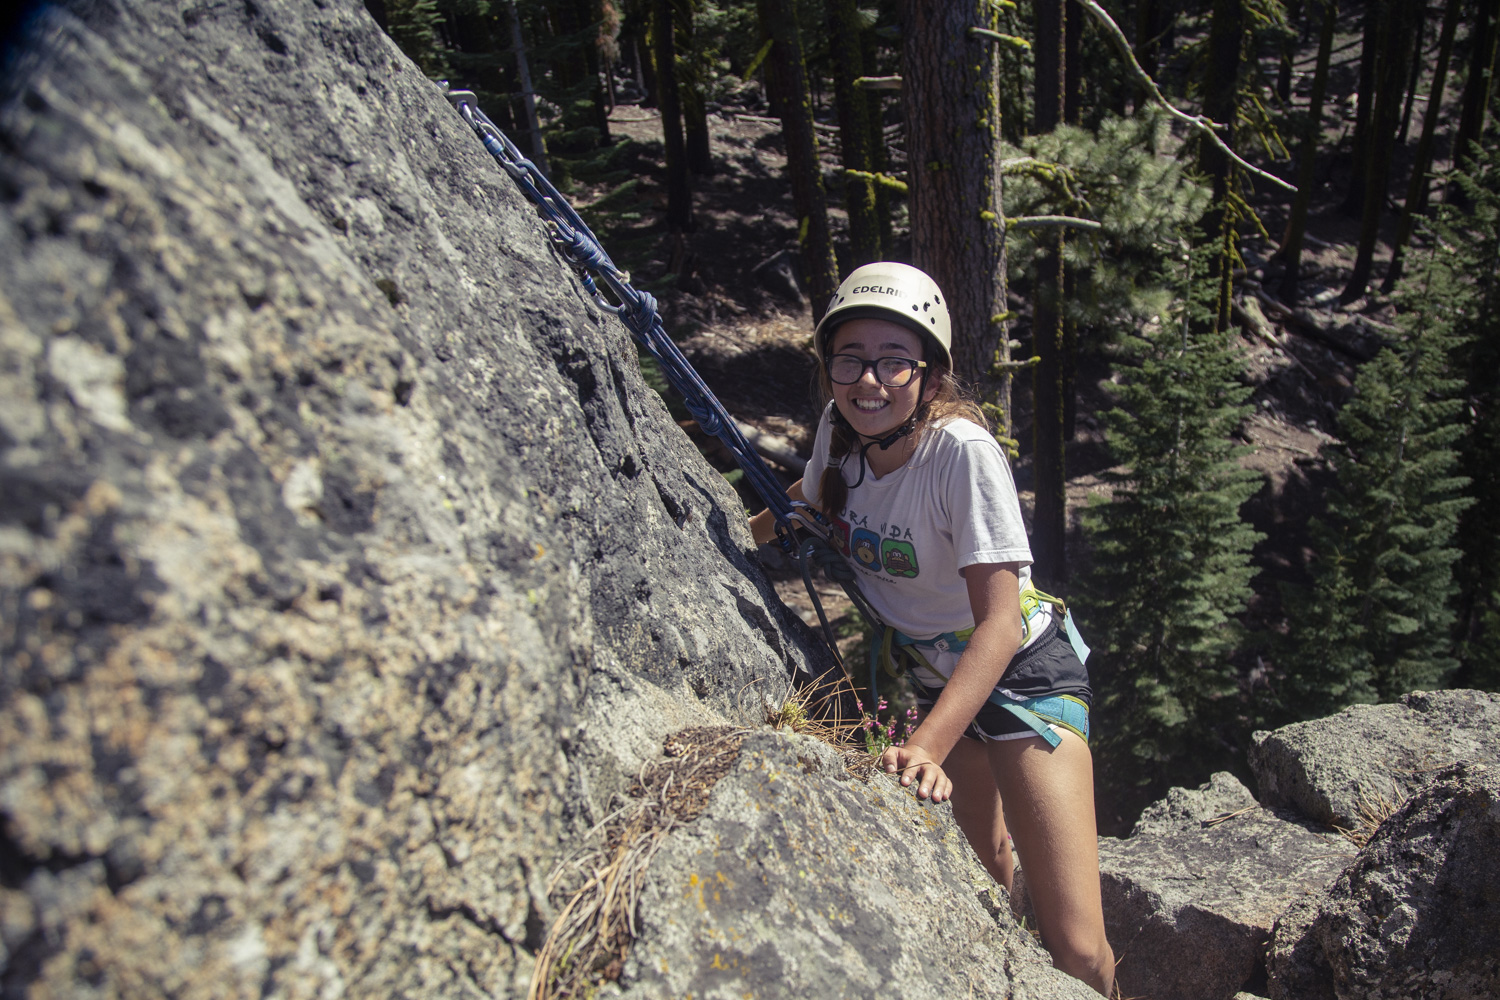 Summer camp helps girls build confidence.